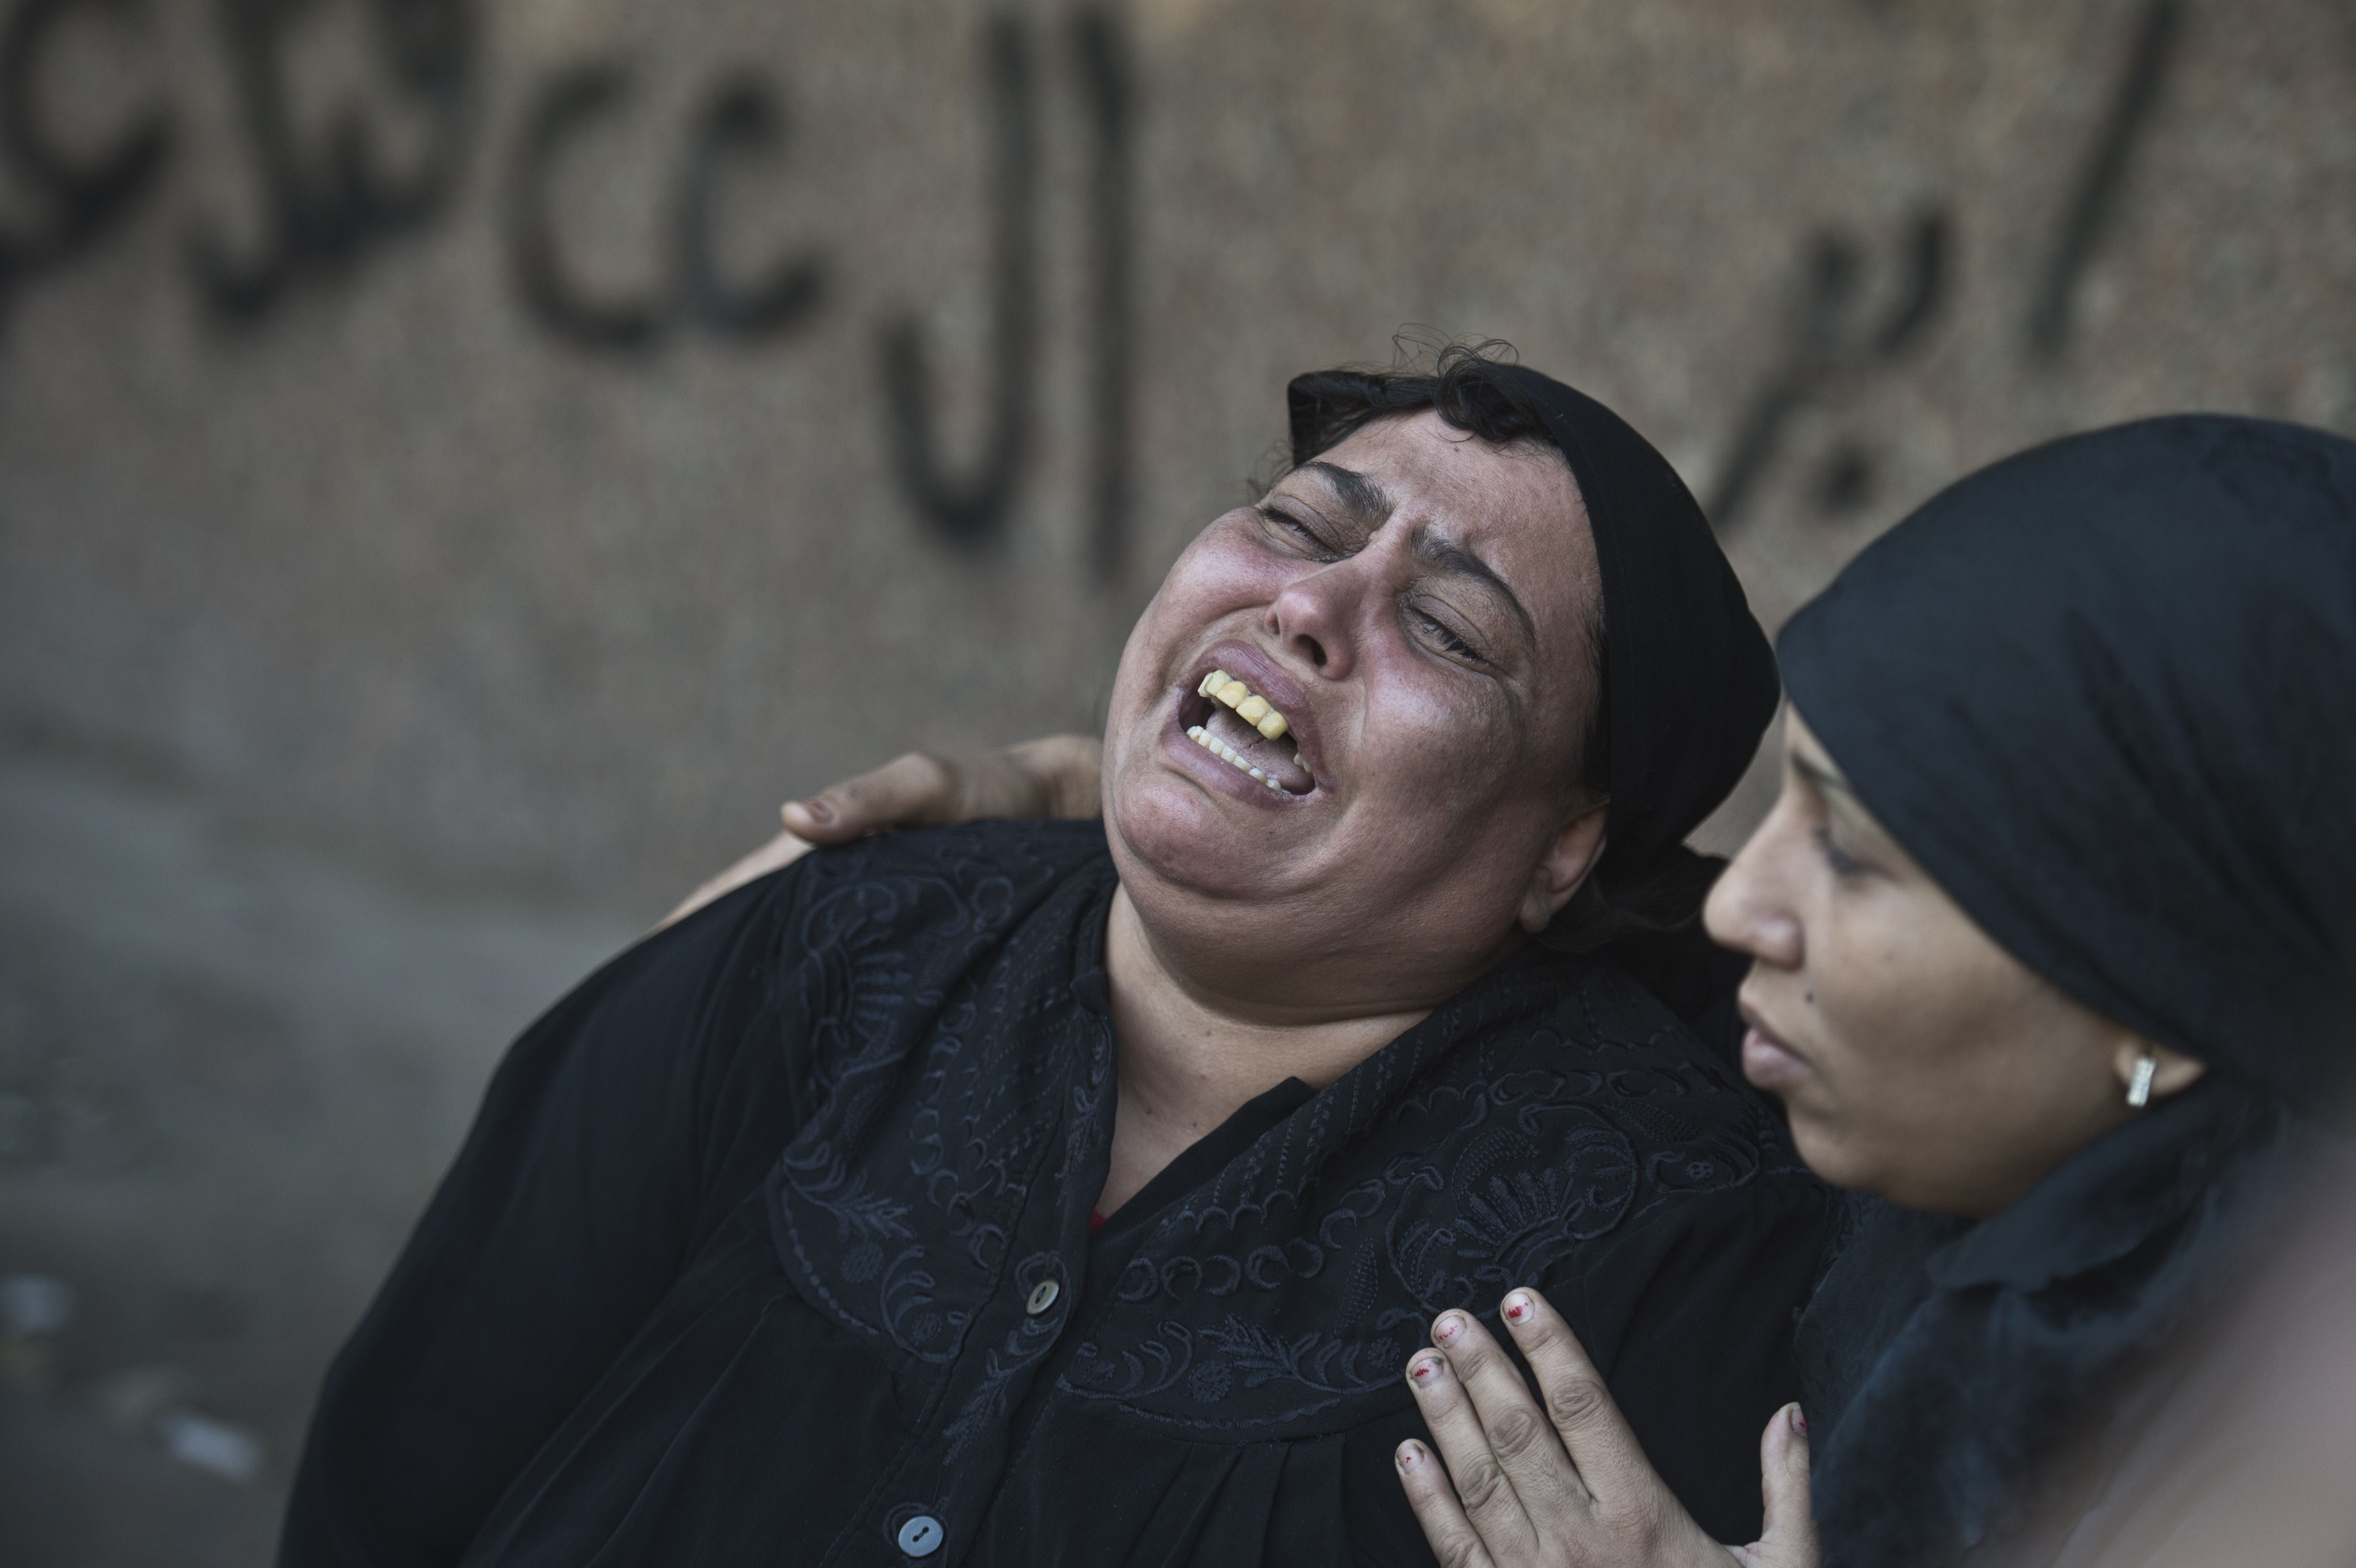 An Egyptian relative of one of the victims of a shooting spree targeting a wedding at a Cairo Coptic Church is comforted as she mourns at a morgue in the capital on October 21, 2013. Late on October 20, a gunman riding on the back of a motorbike sprayed bullets at a group as it emerged from a wedding service at the Church of the Virgin in the working class neighbourhood of Al-Warrak. (AFP PHOTO / KHALED DESOUKI)